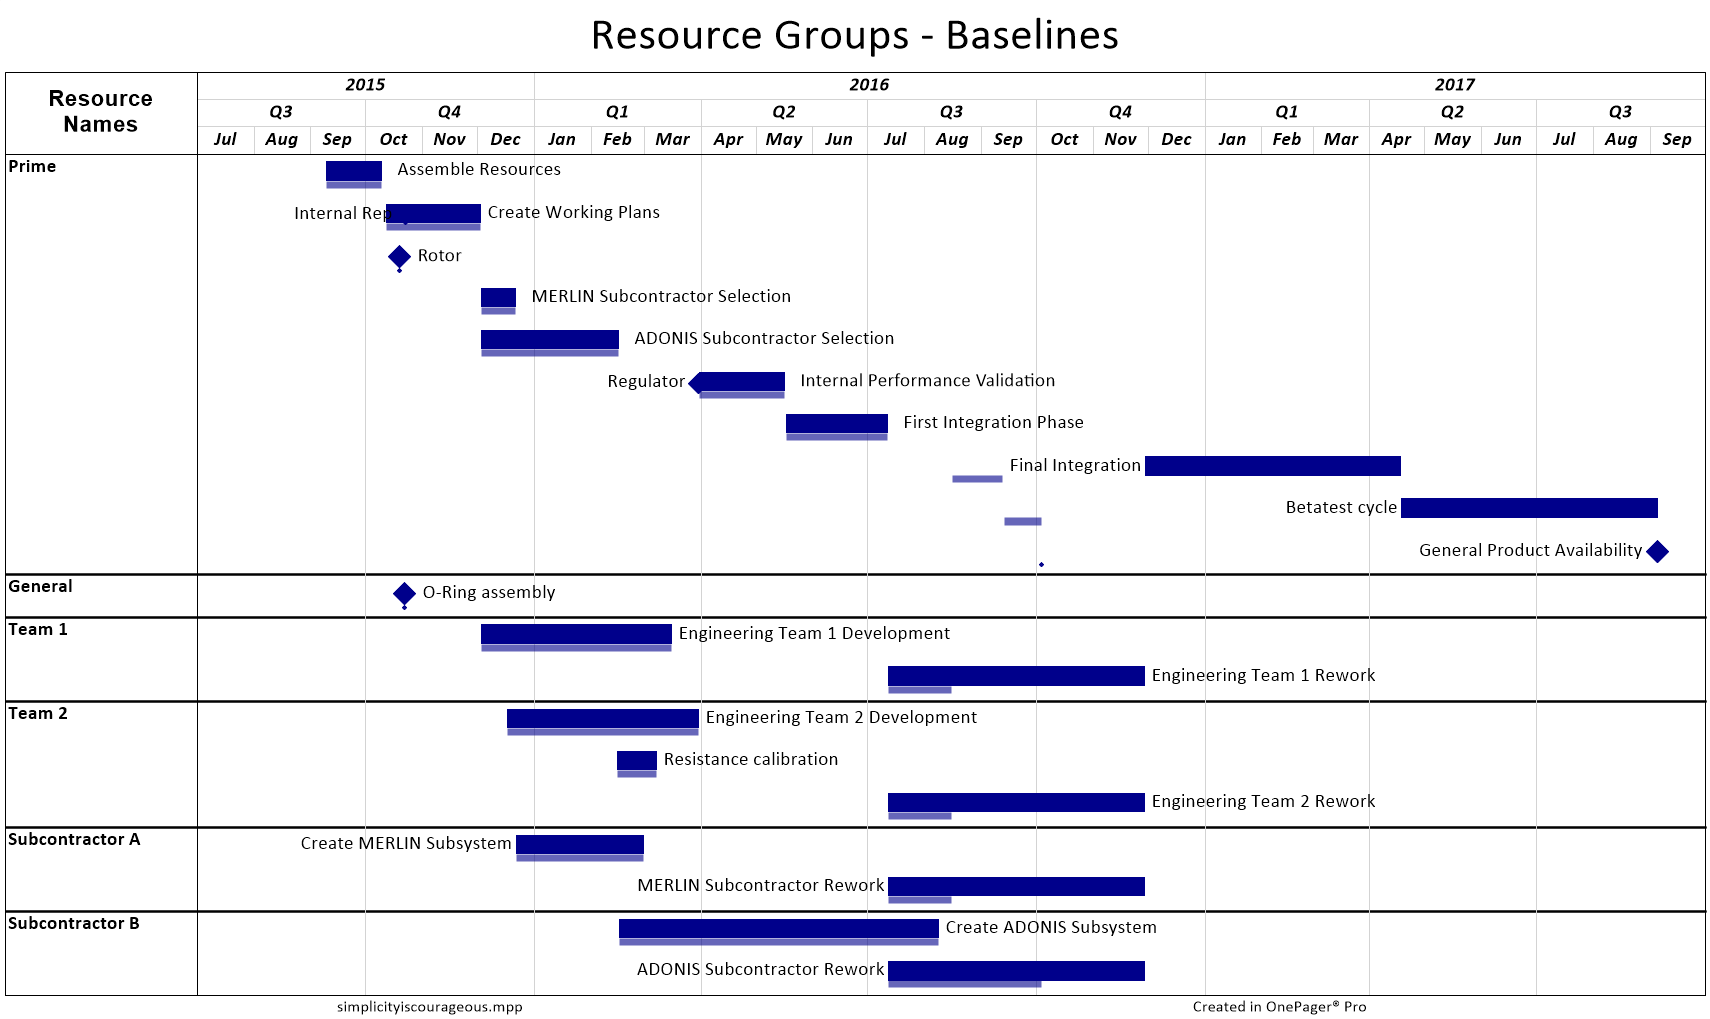 resource-grouping-baselines